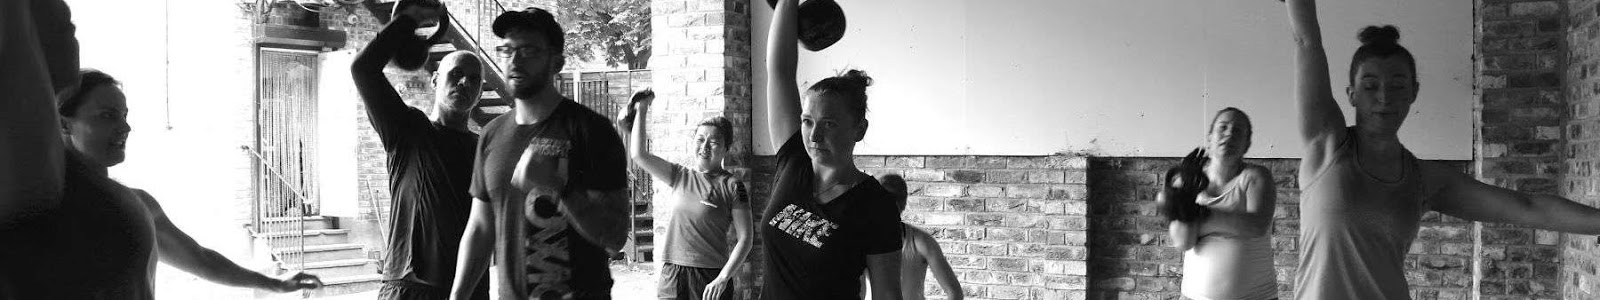 Join Crossfit fitness training